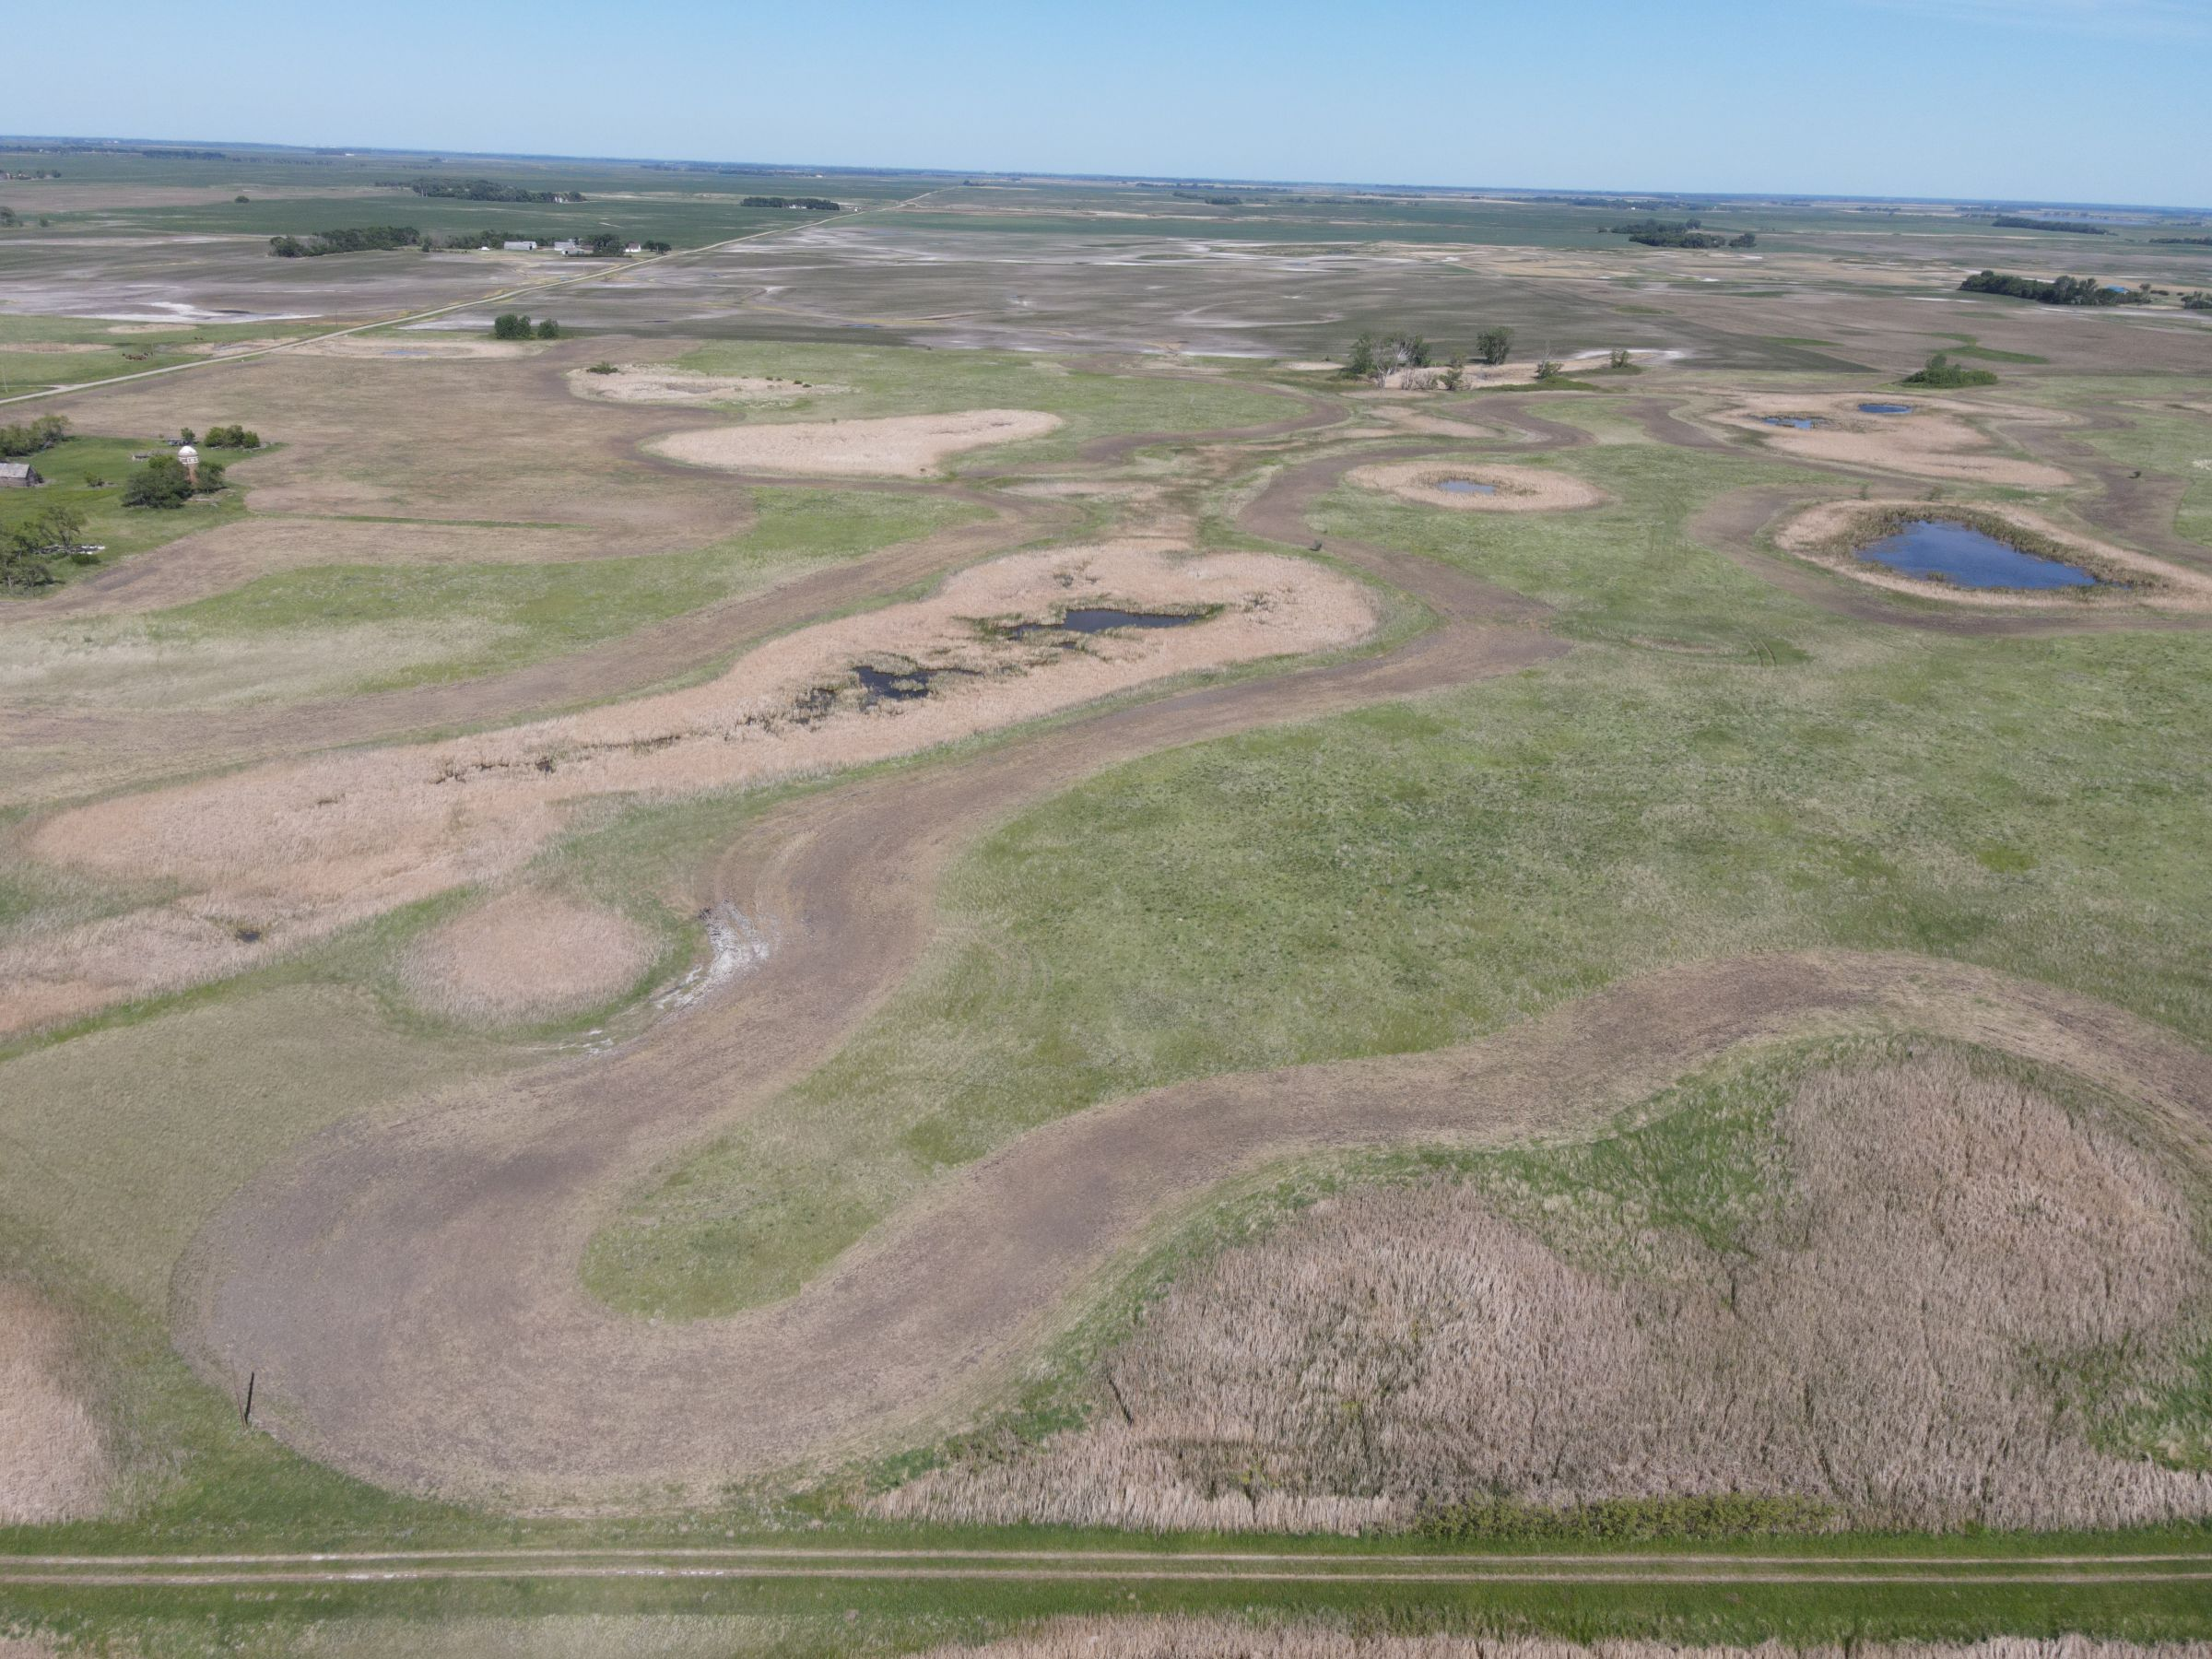 auctions-cass-county-north-dakota-320-acres-listing-number-15590-2-2021-06-22-191129.JPG